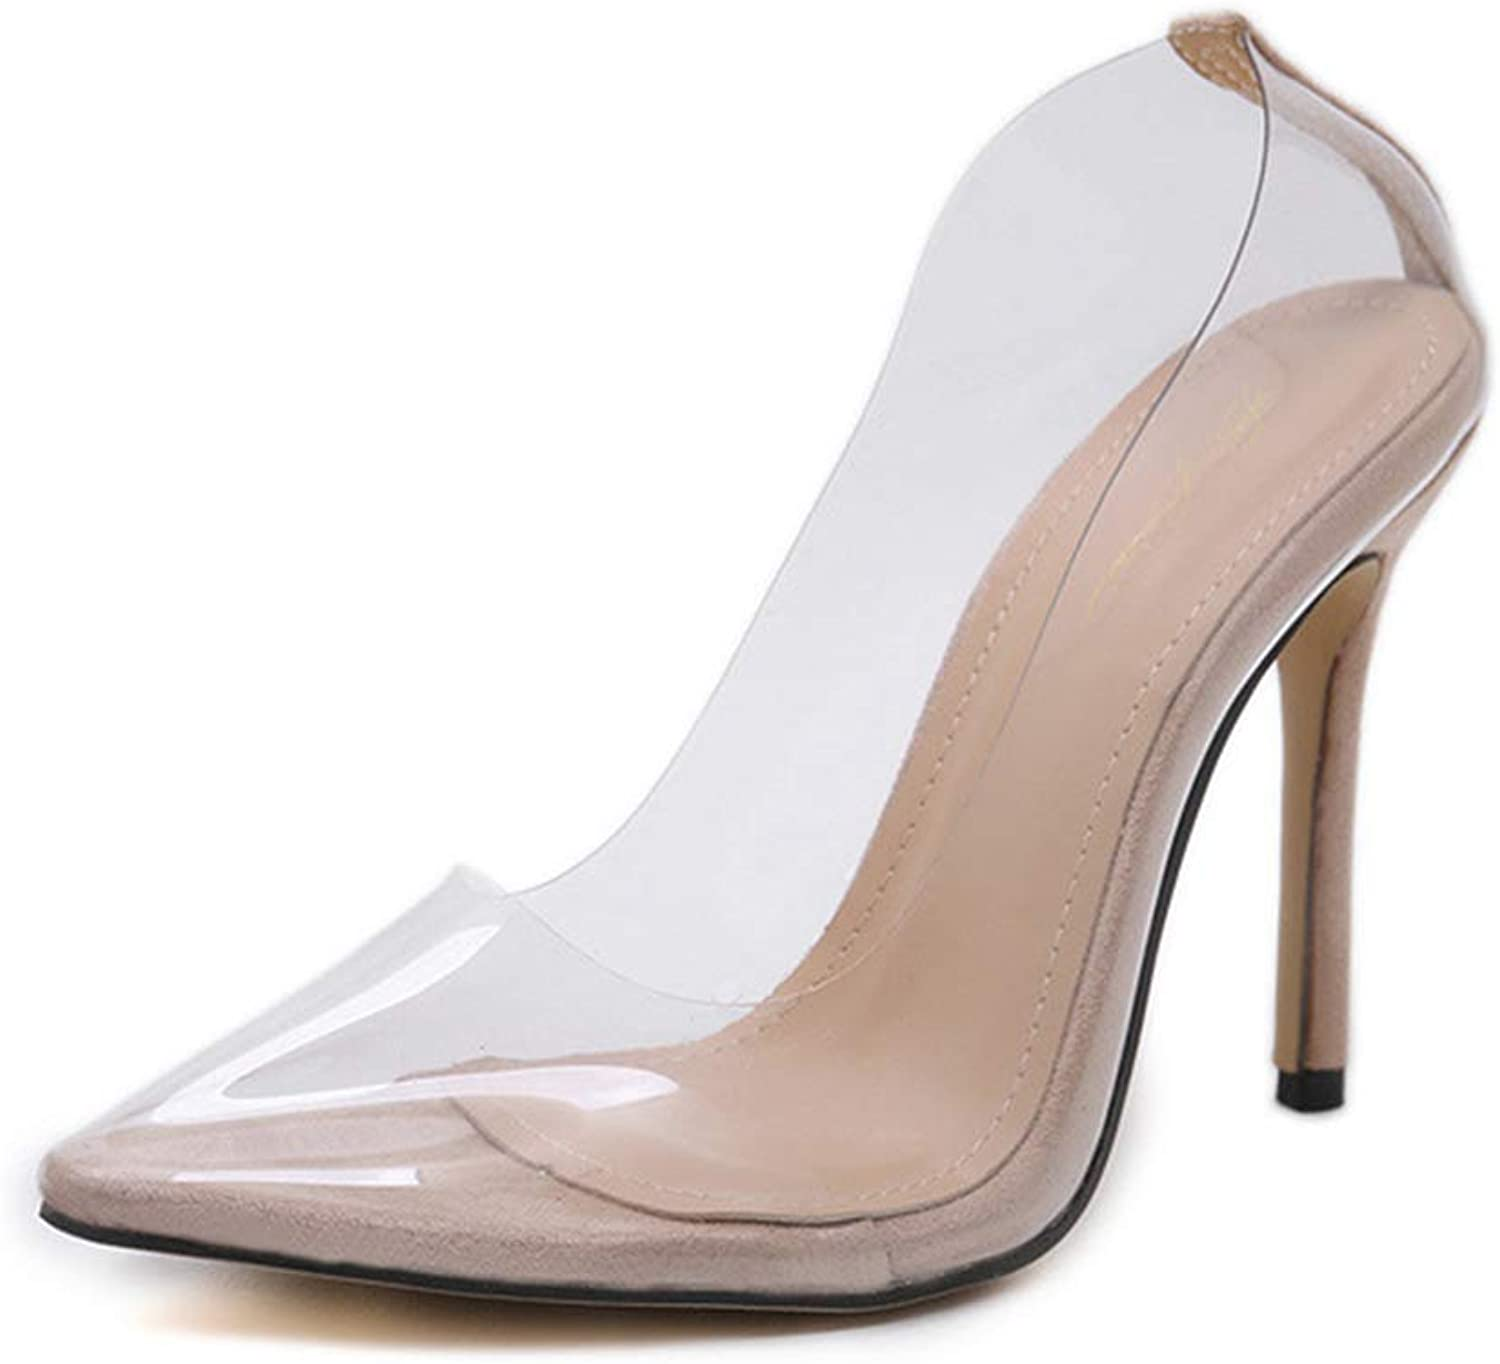 Drew Toby Women Pumps Transparent Pointed-Toe Shallow Mouth Fashion Simple High Heels